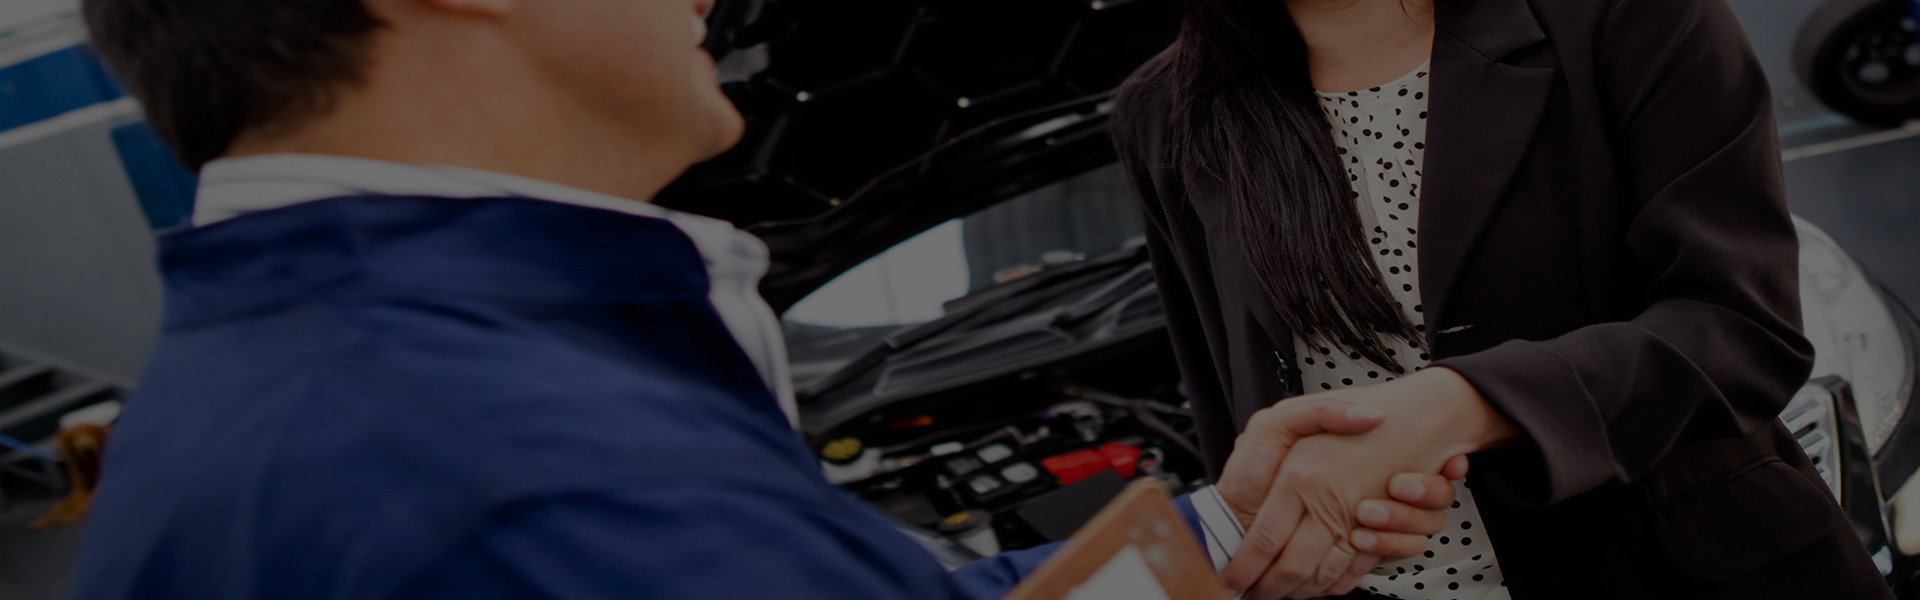 Welcome to SMC Accident Repairs